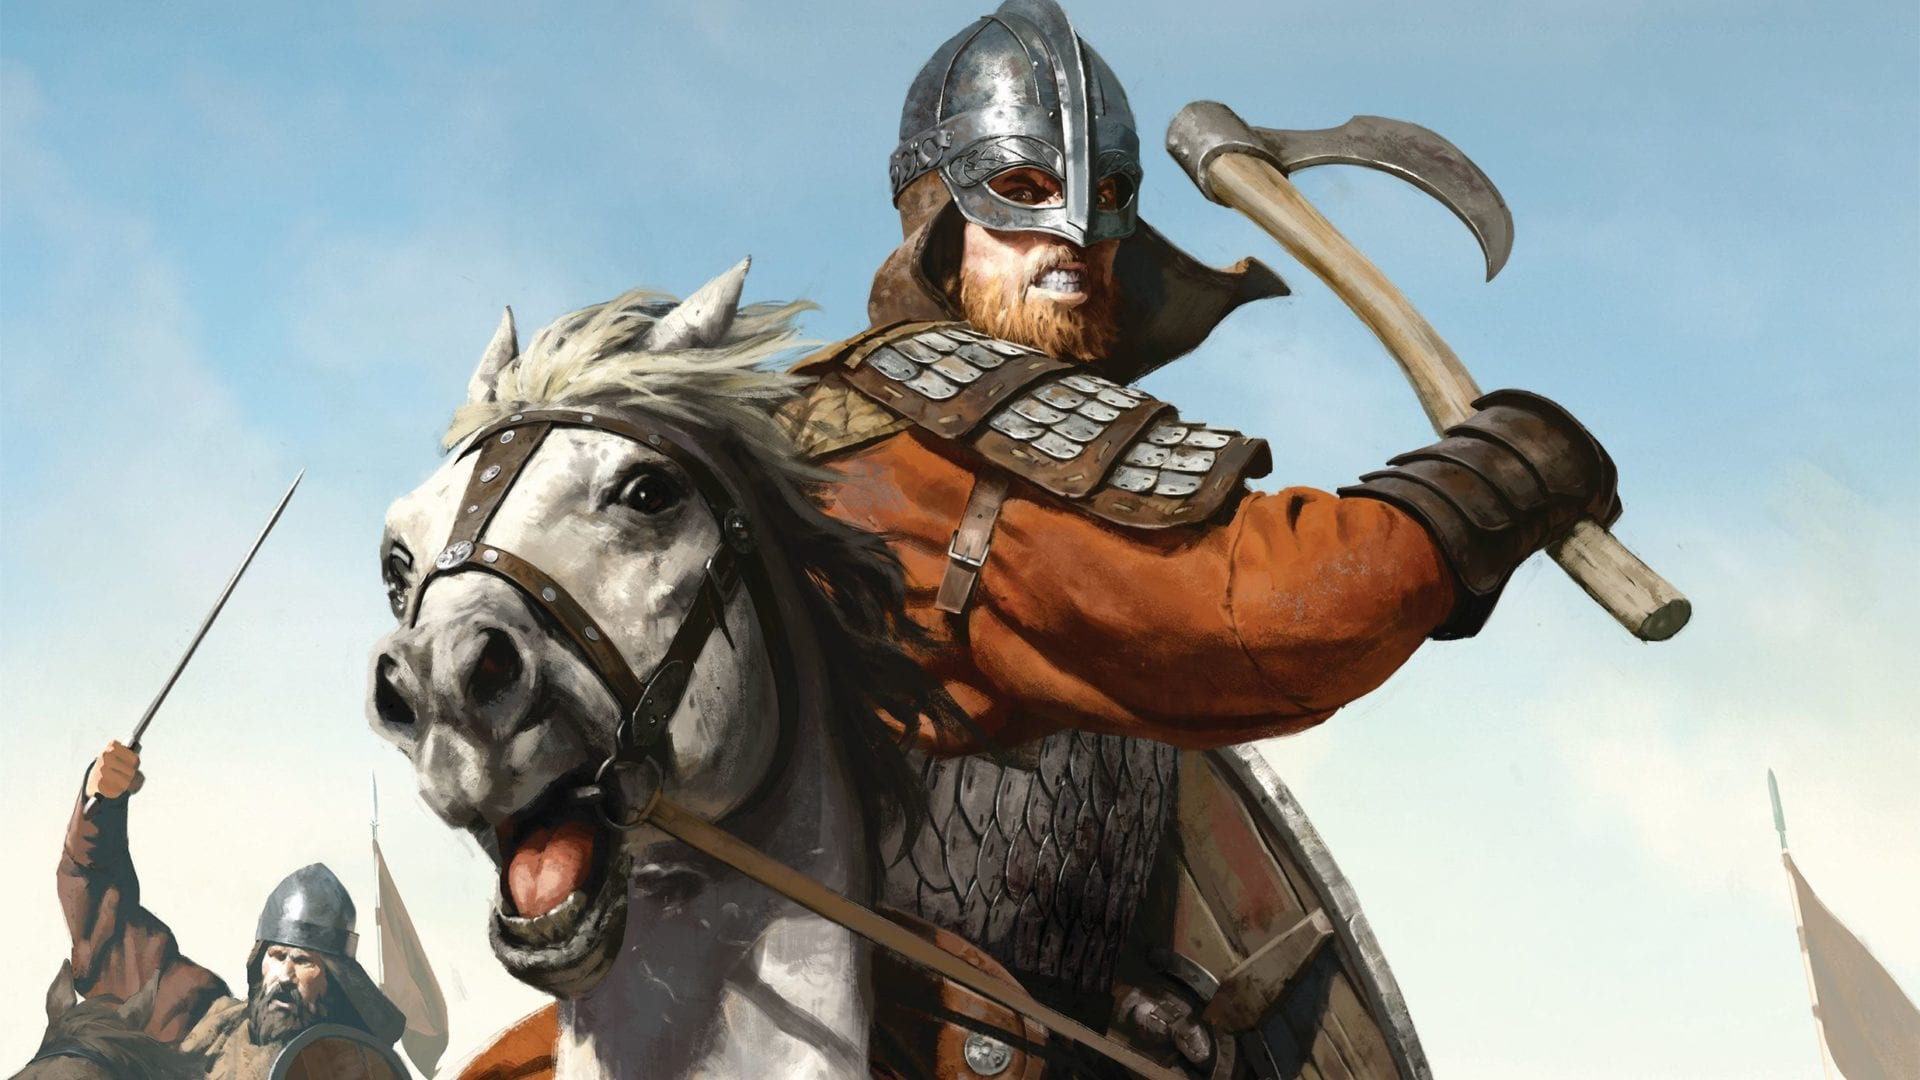 mount & blade 2, bannerlord, workshops